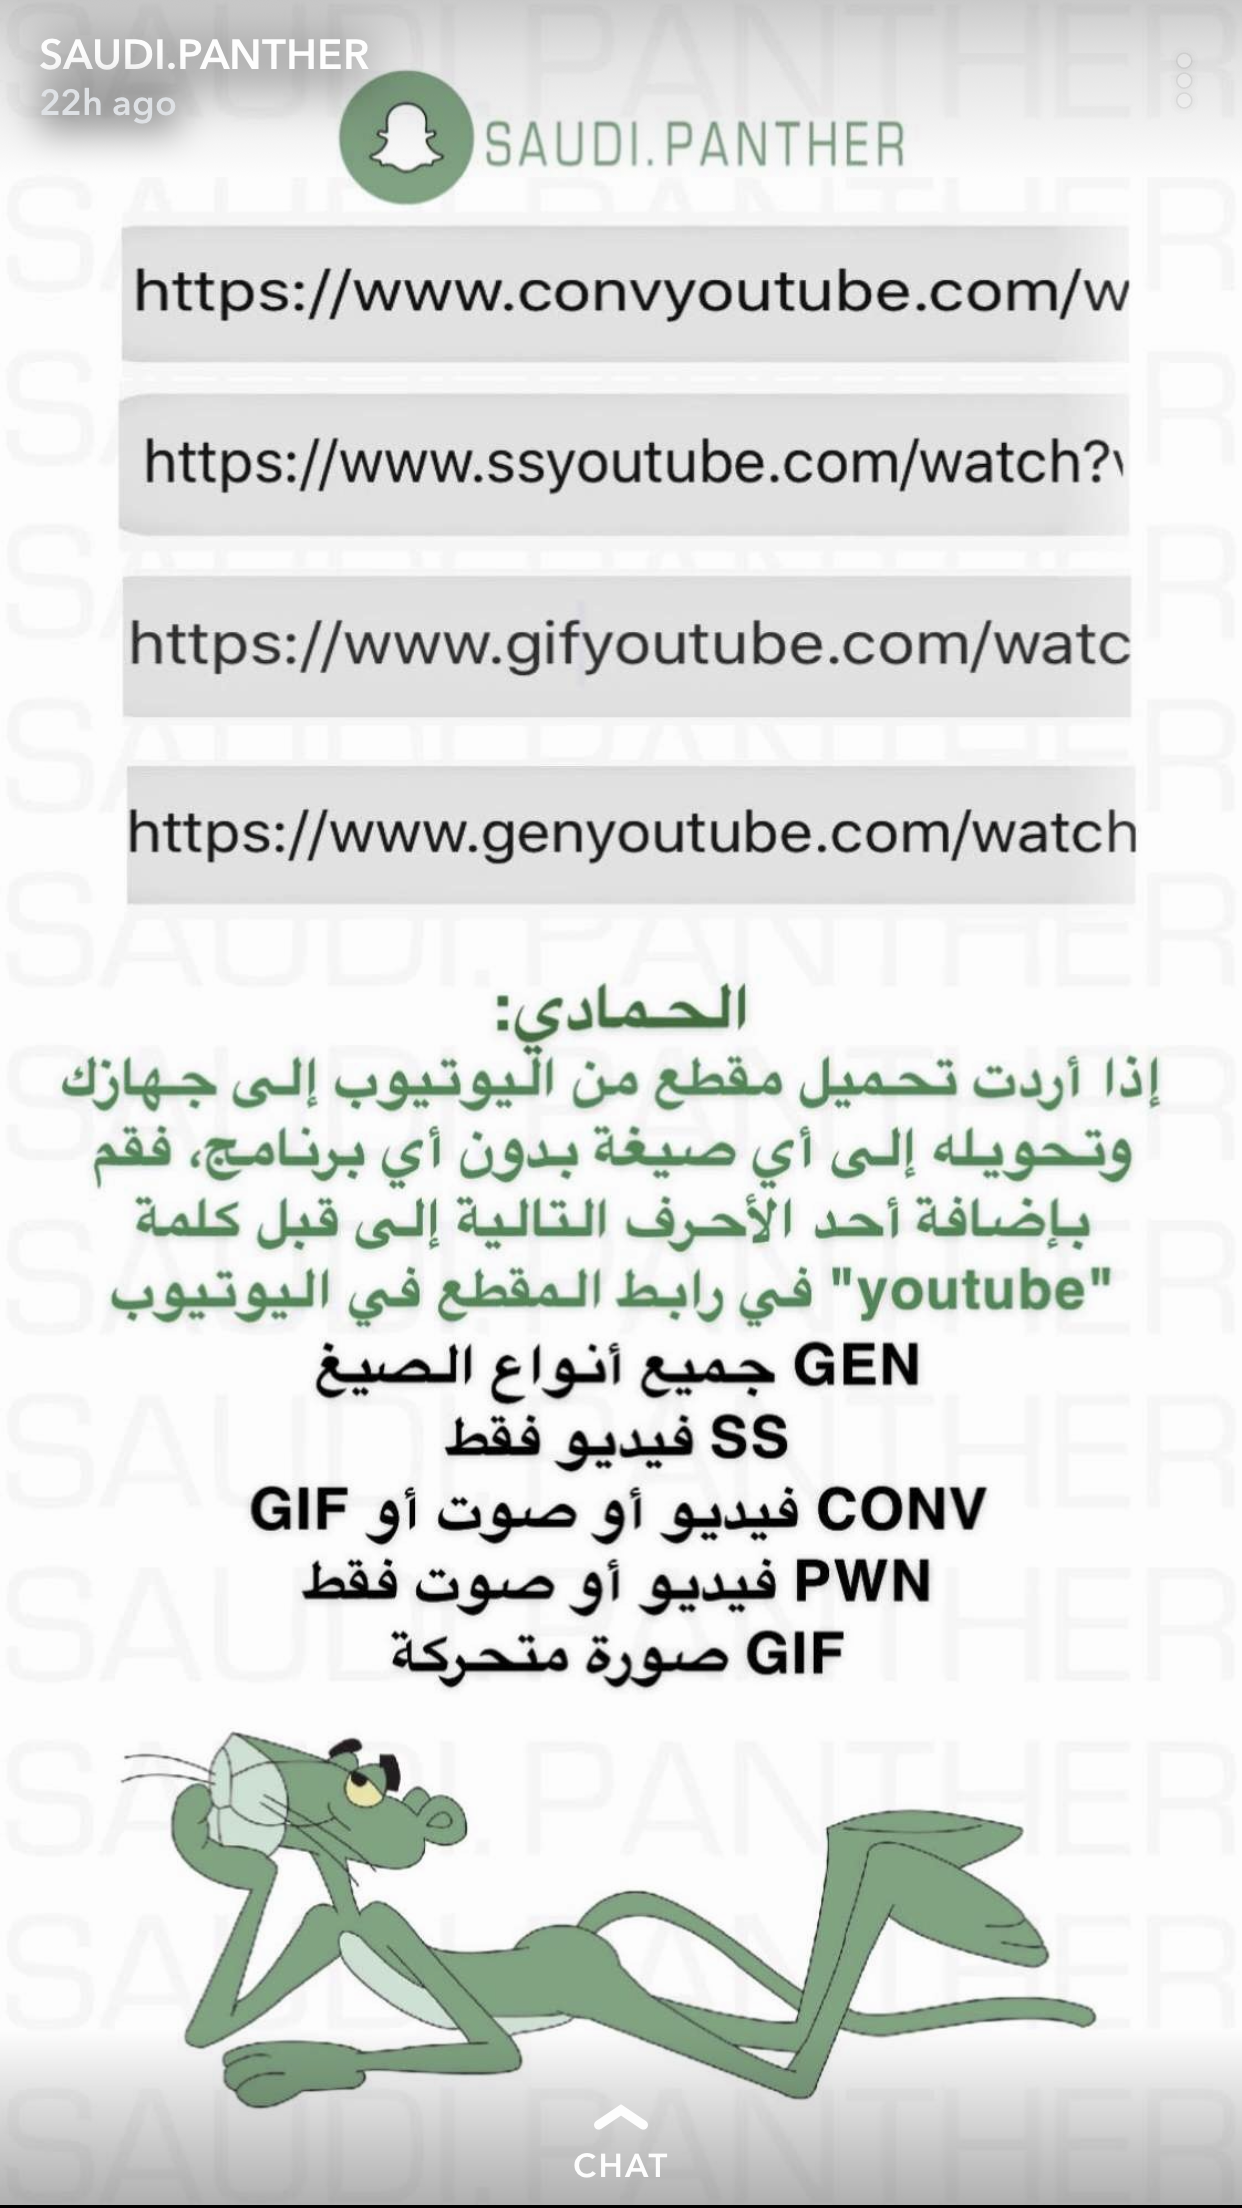 Pin By S On Saudi Panther Tech Apps Useful Life Hacks Computer Programming